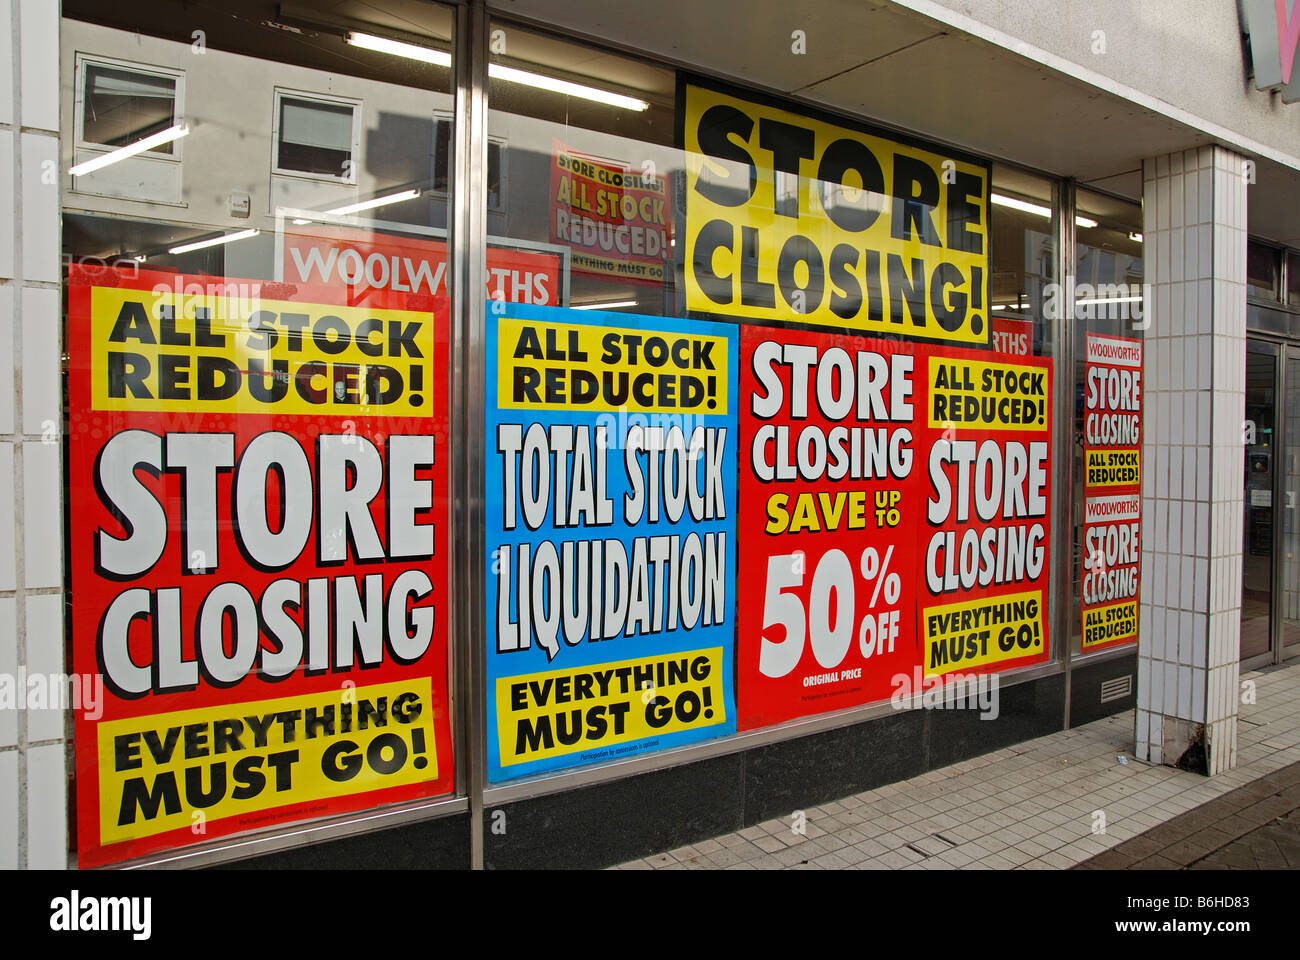 store closing down posters in the window of a woolworths